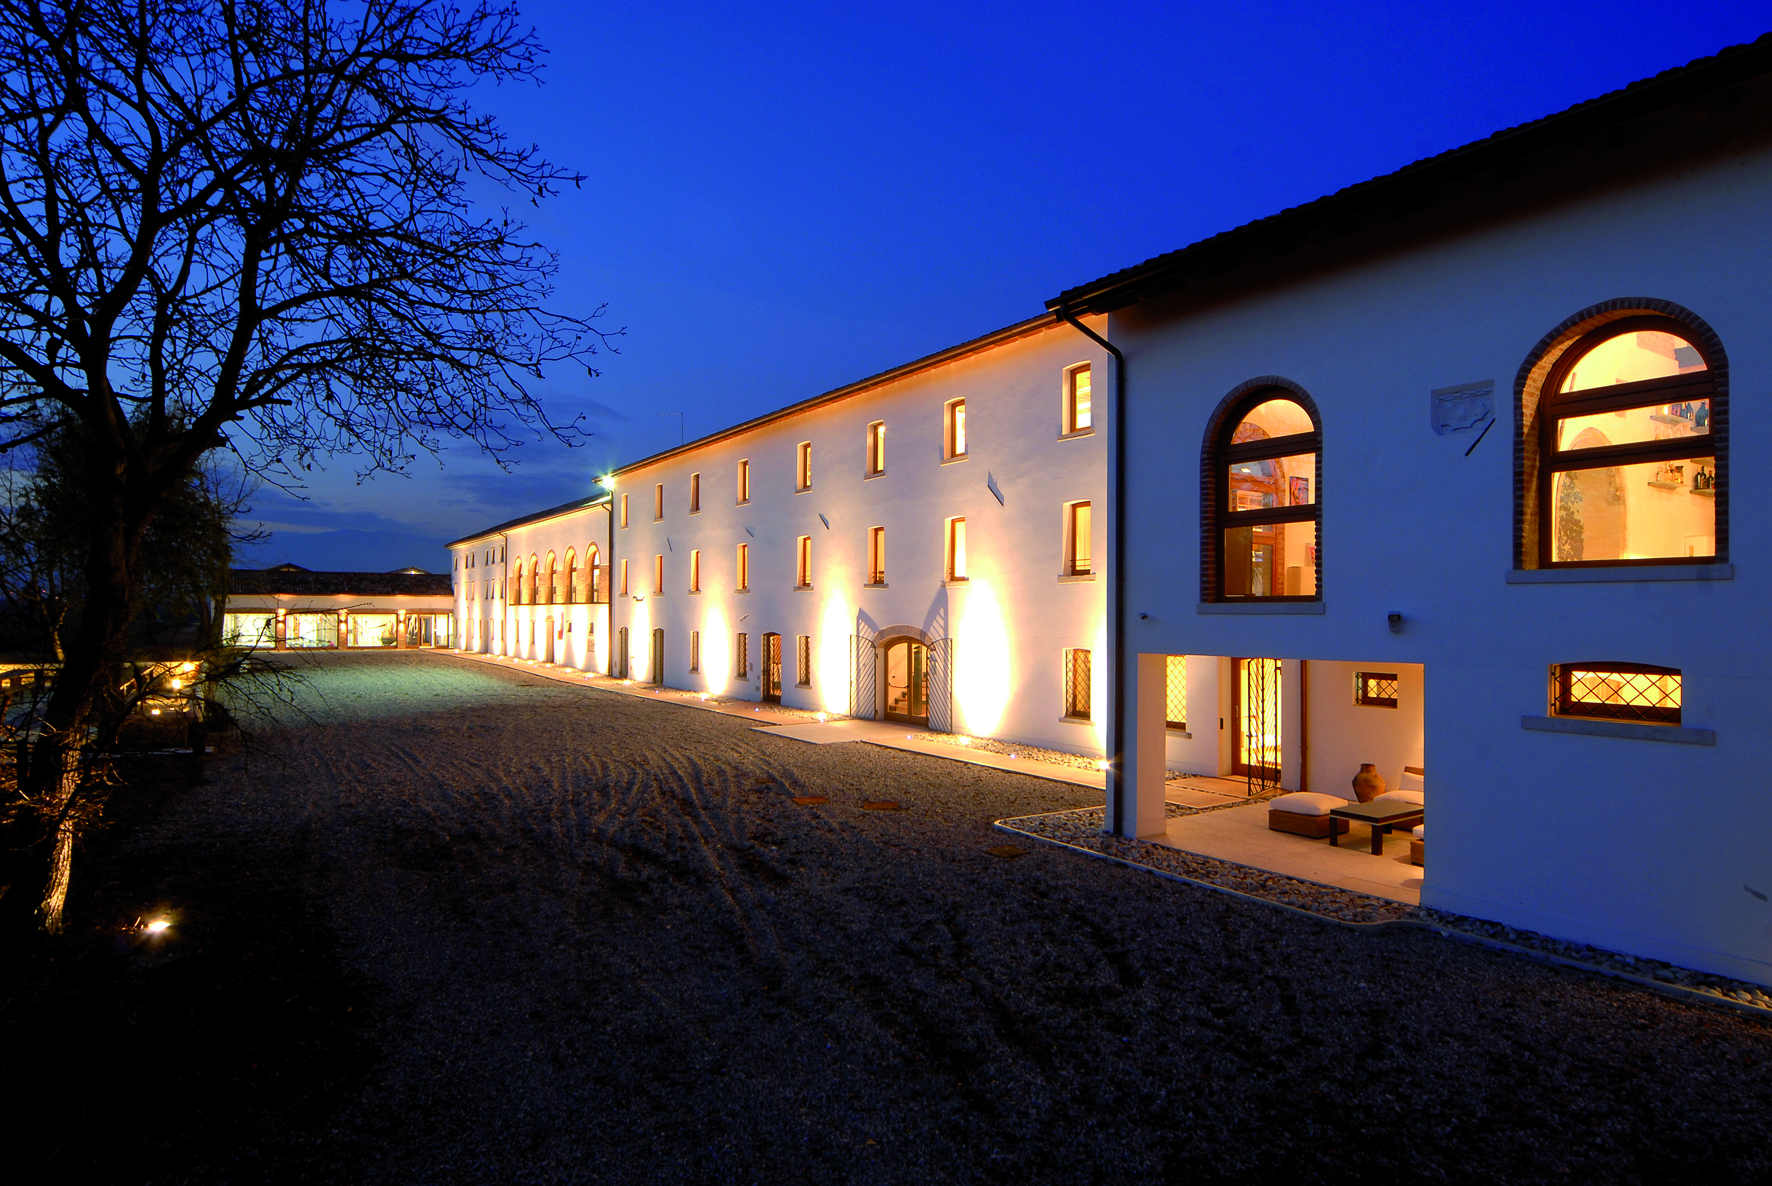 Distillerie Bottega at night. Photo provided by Bottega SpA.